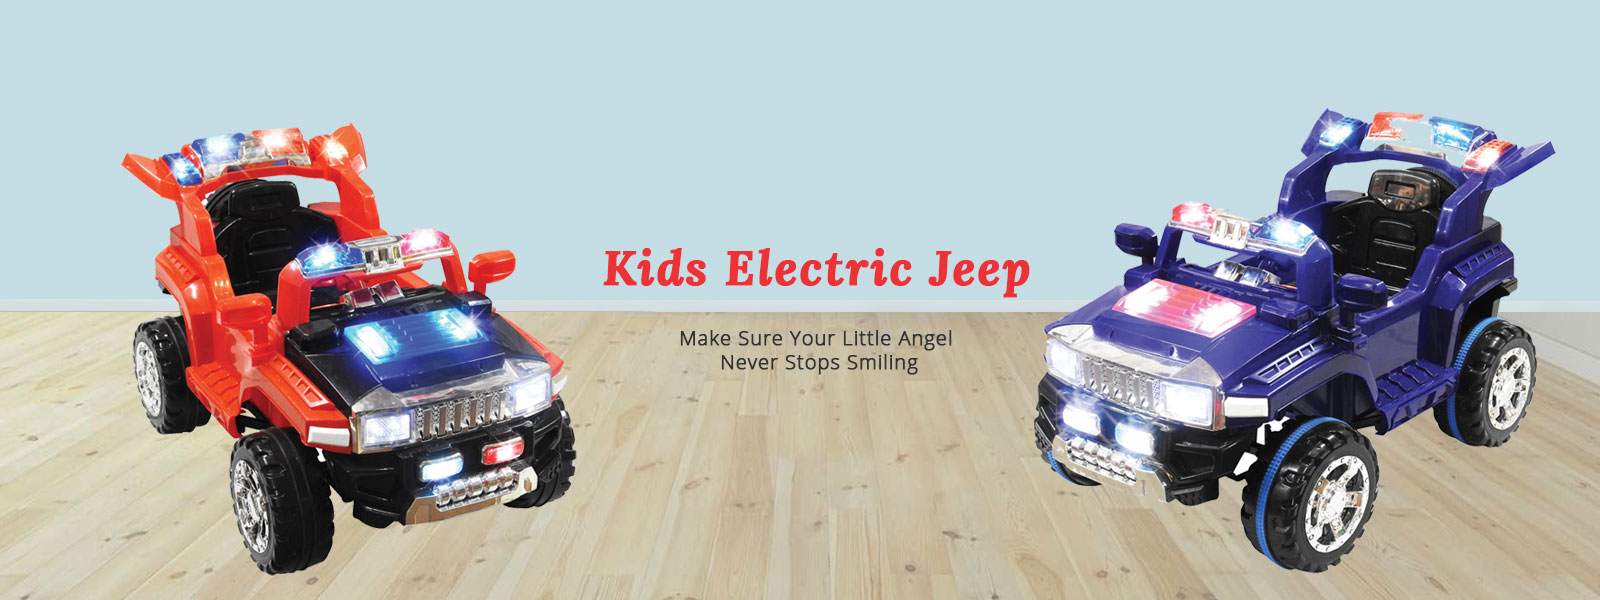 Kids Electric Jeep Manufacturers in Amritsar